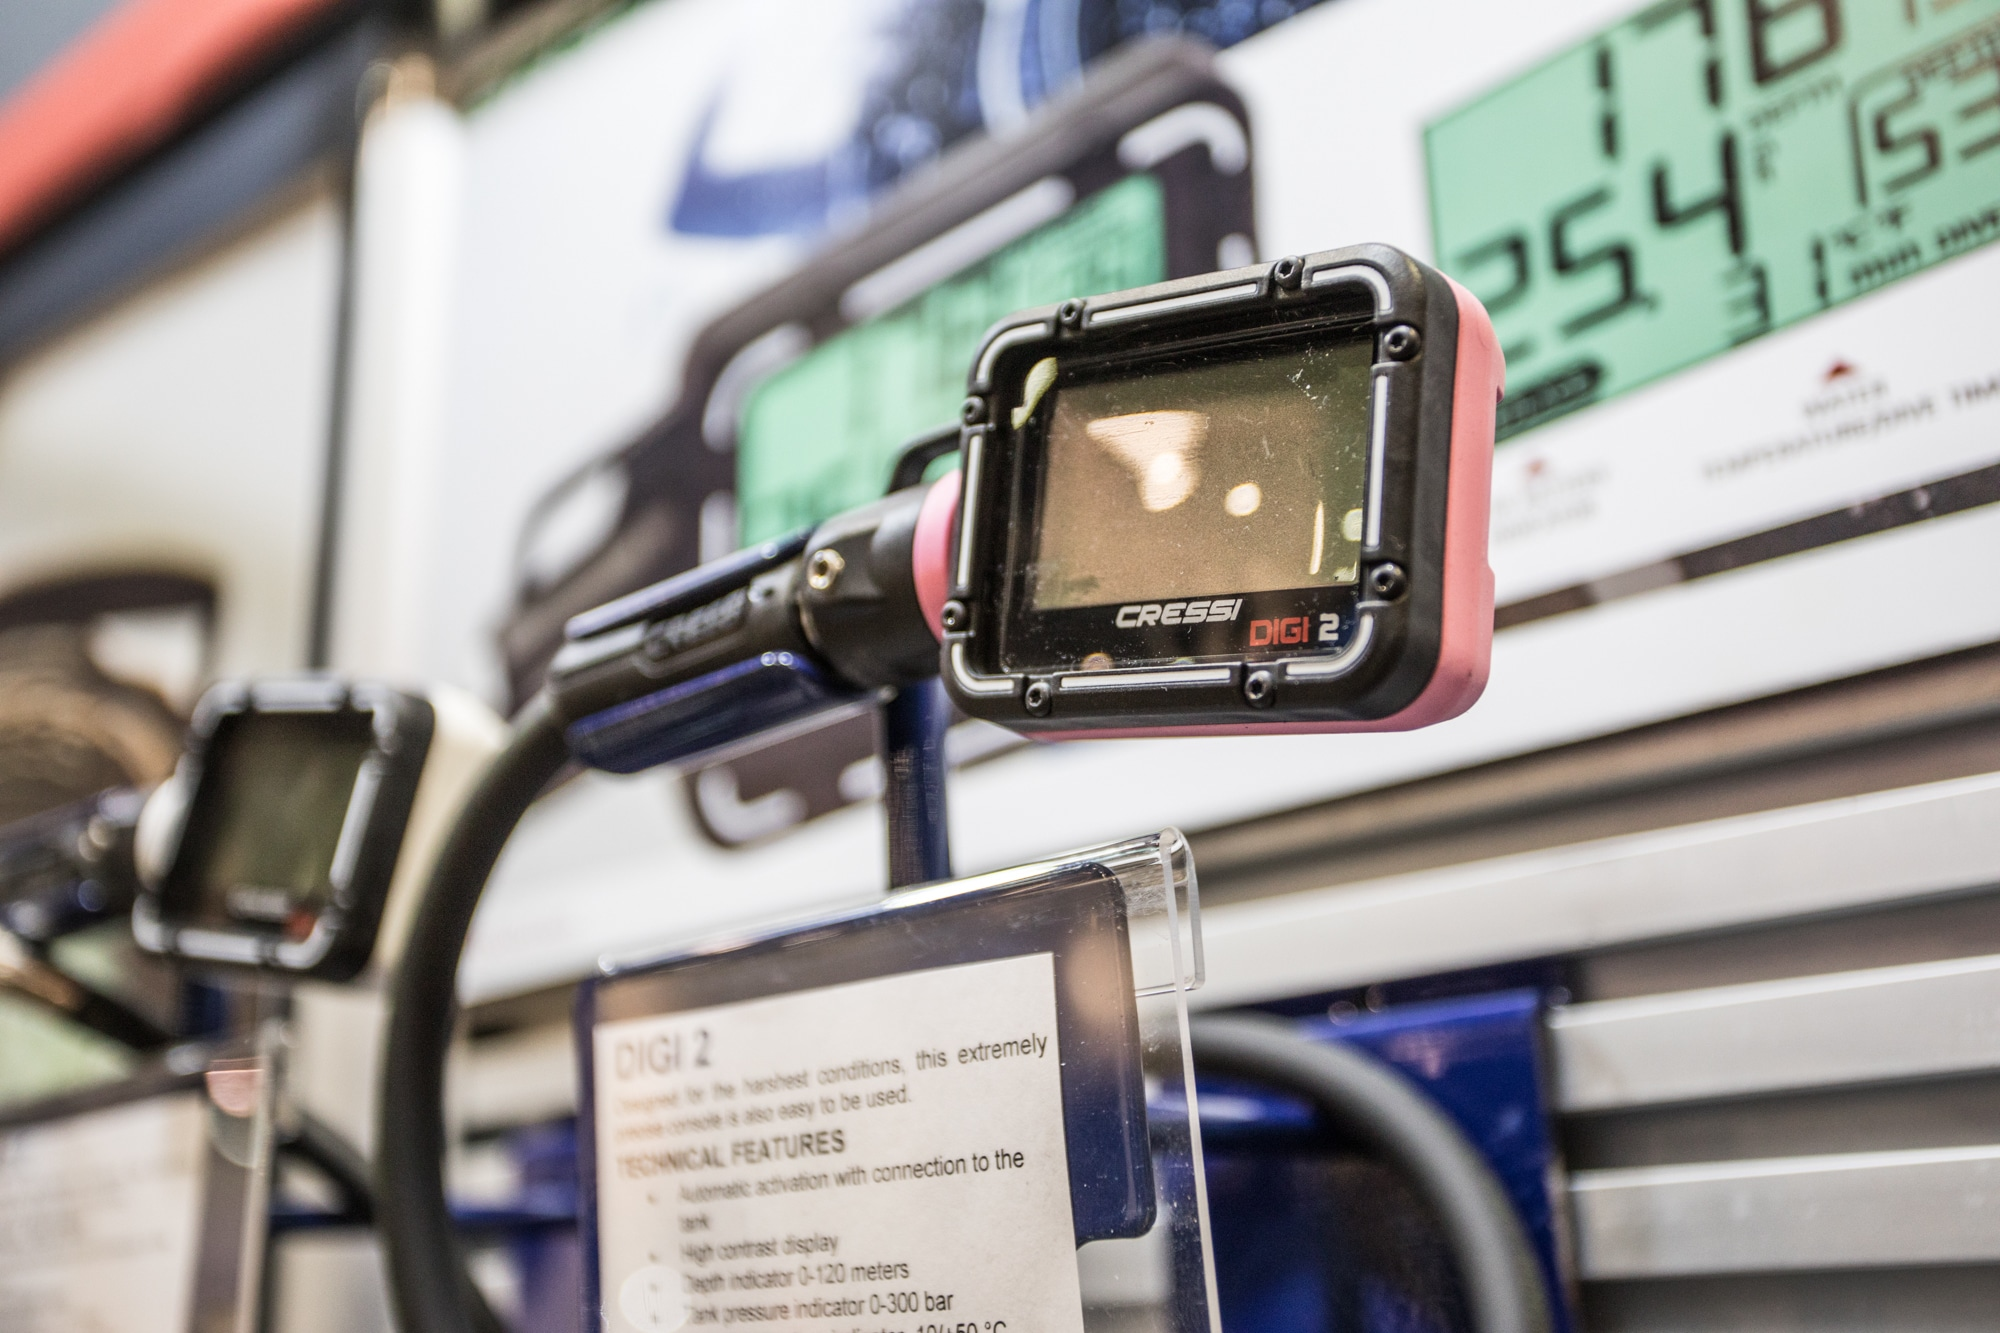 Cressi launched its new digital pressure gauge at Dema Show 2018 (photo by Alex St. Jean)